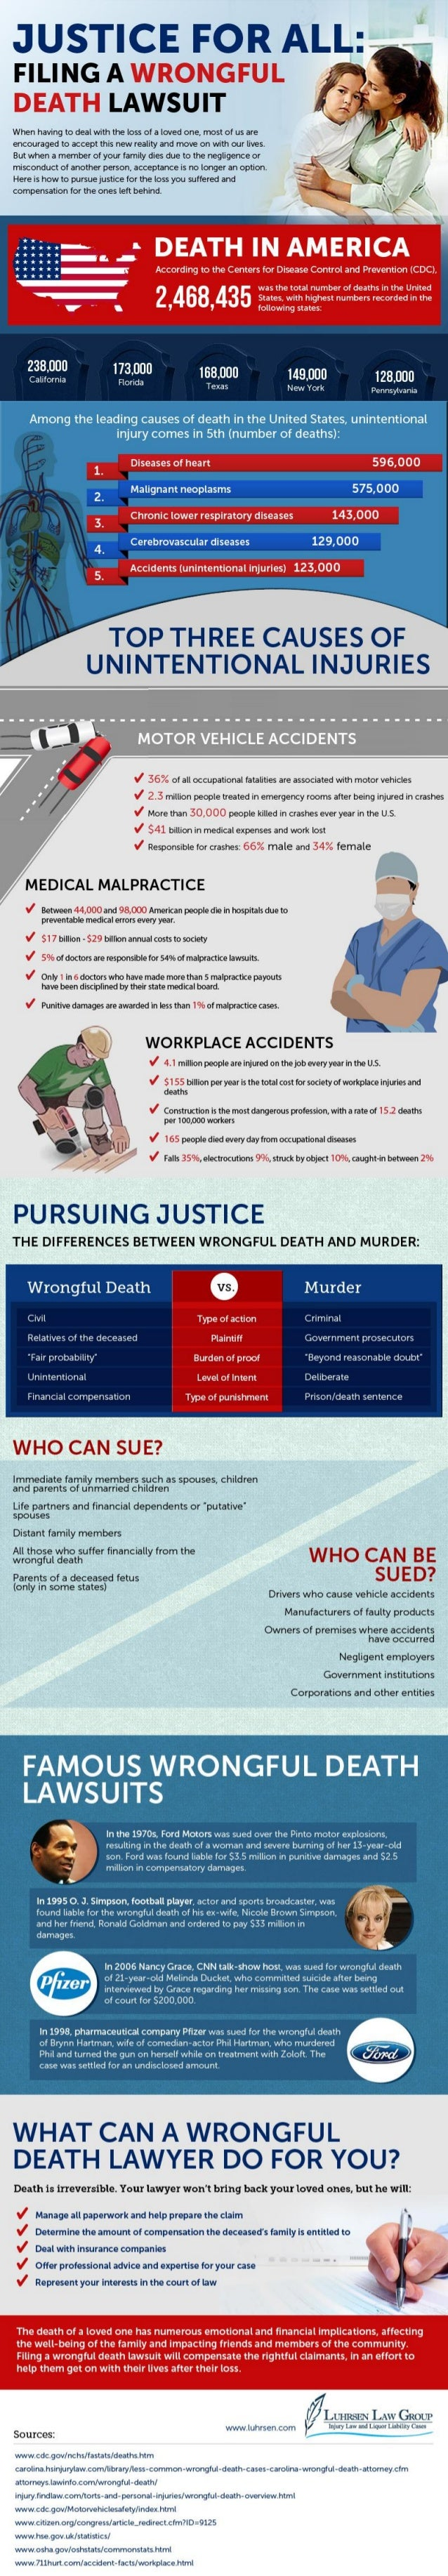 Justice for All: Filing a Wrongful Death Lawsuit